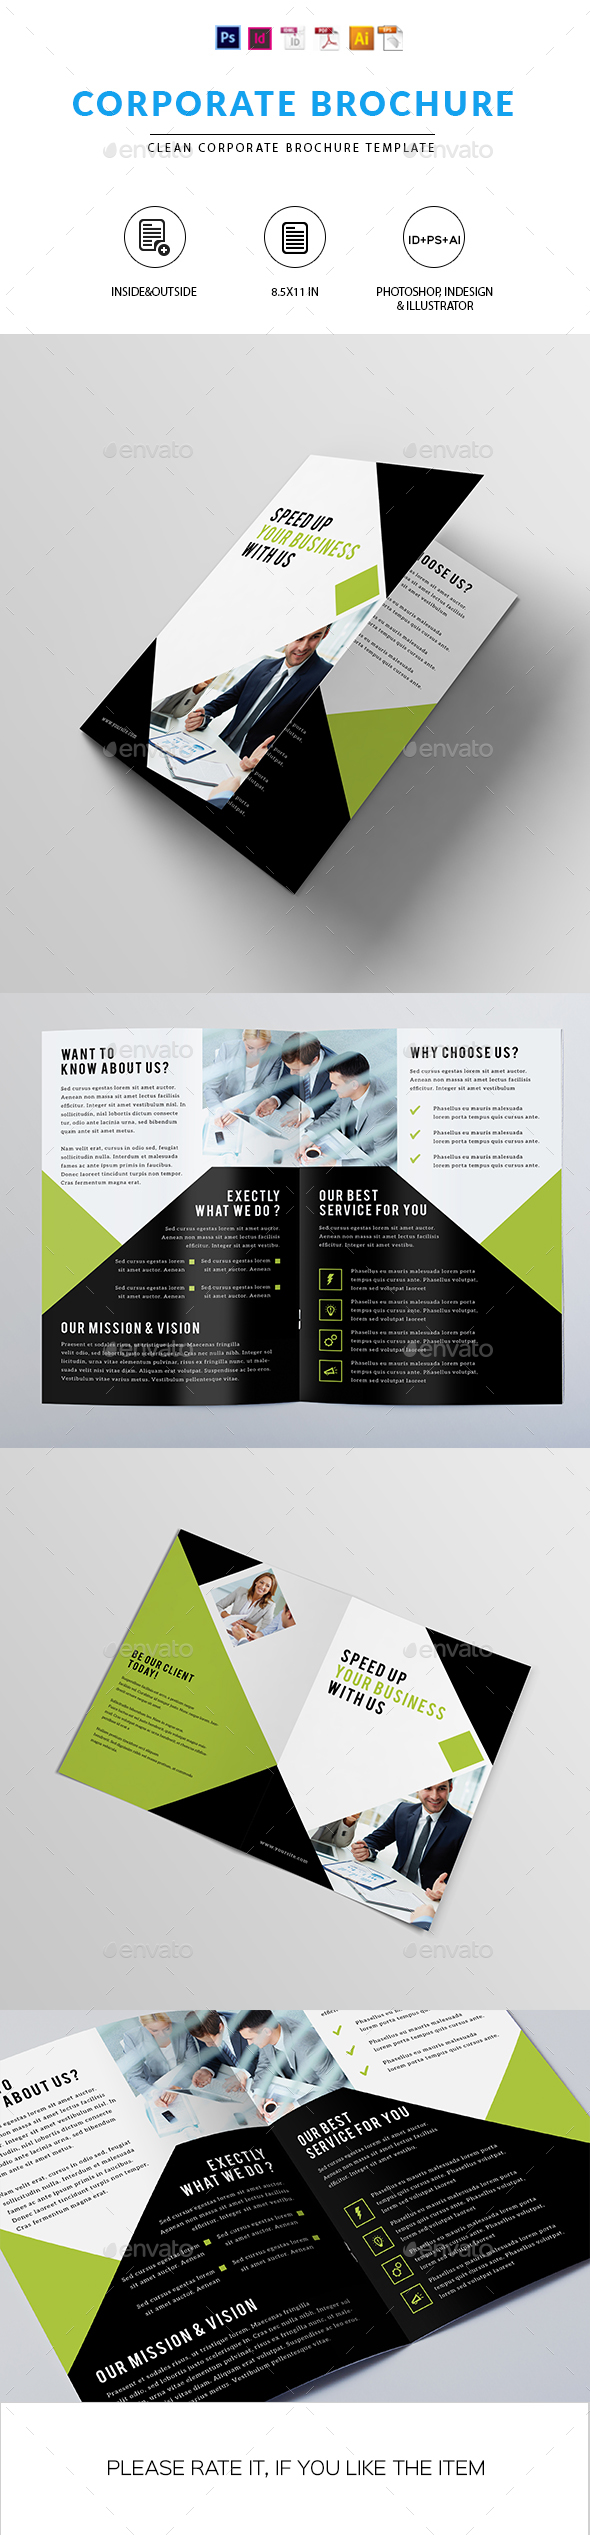 Clean Corporate Brochure - Corporate Brochures